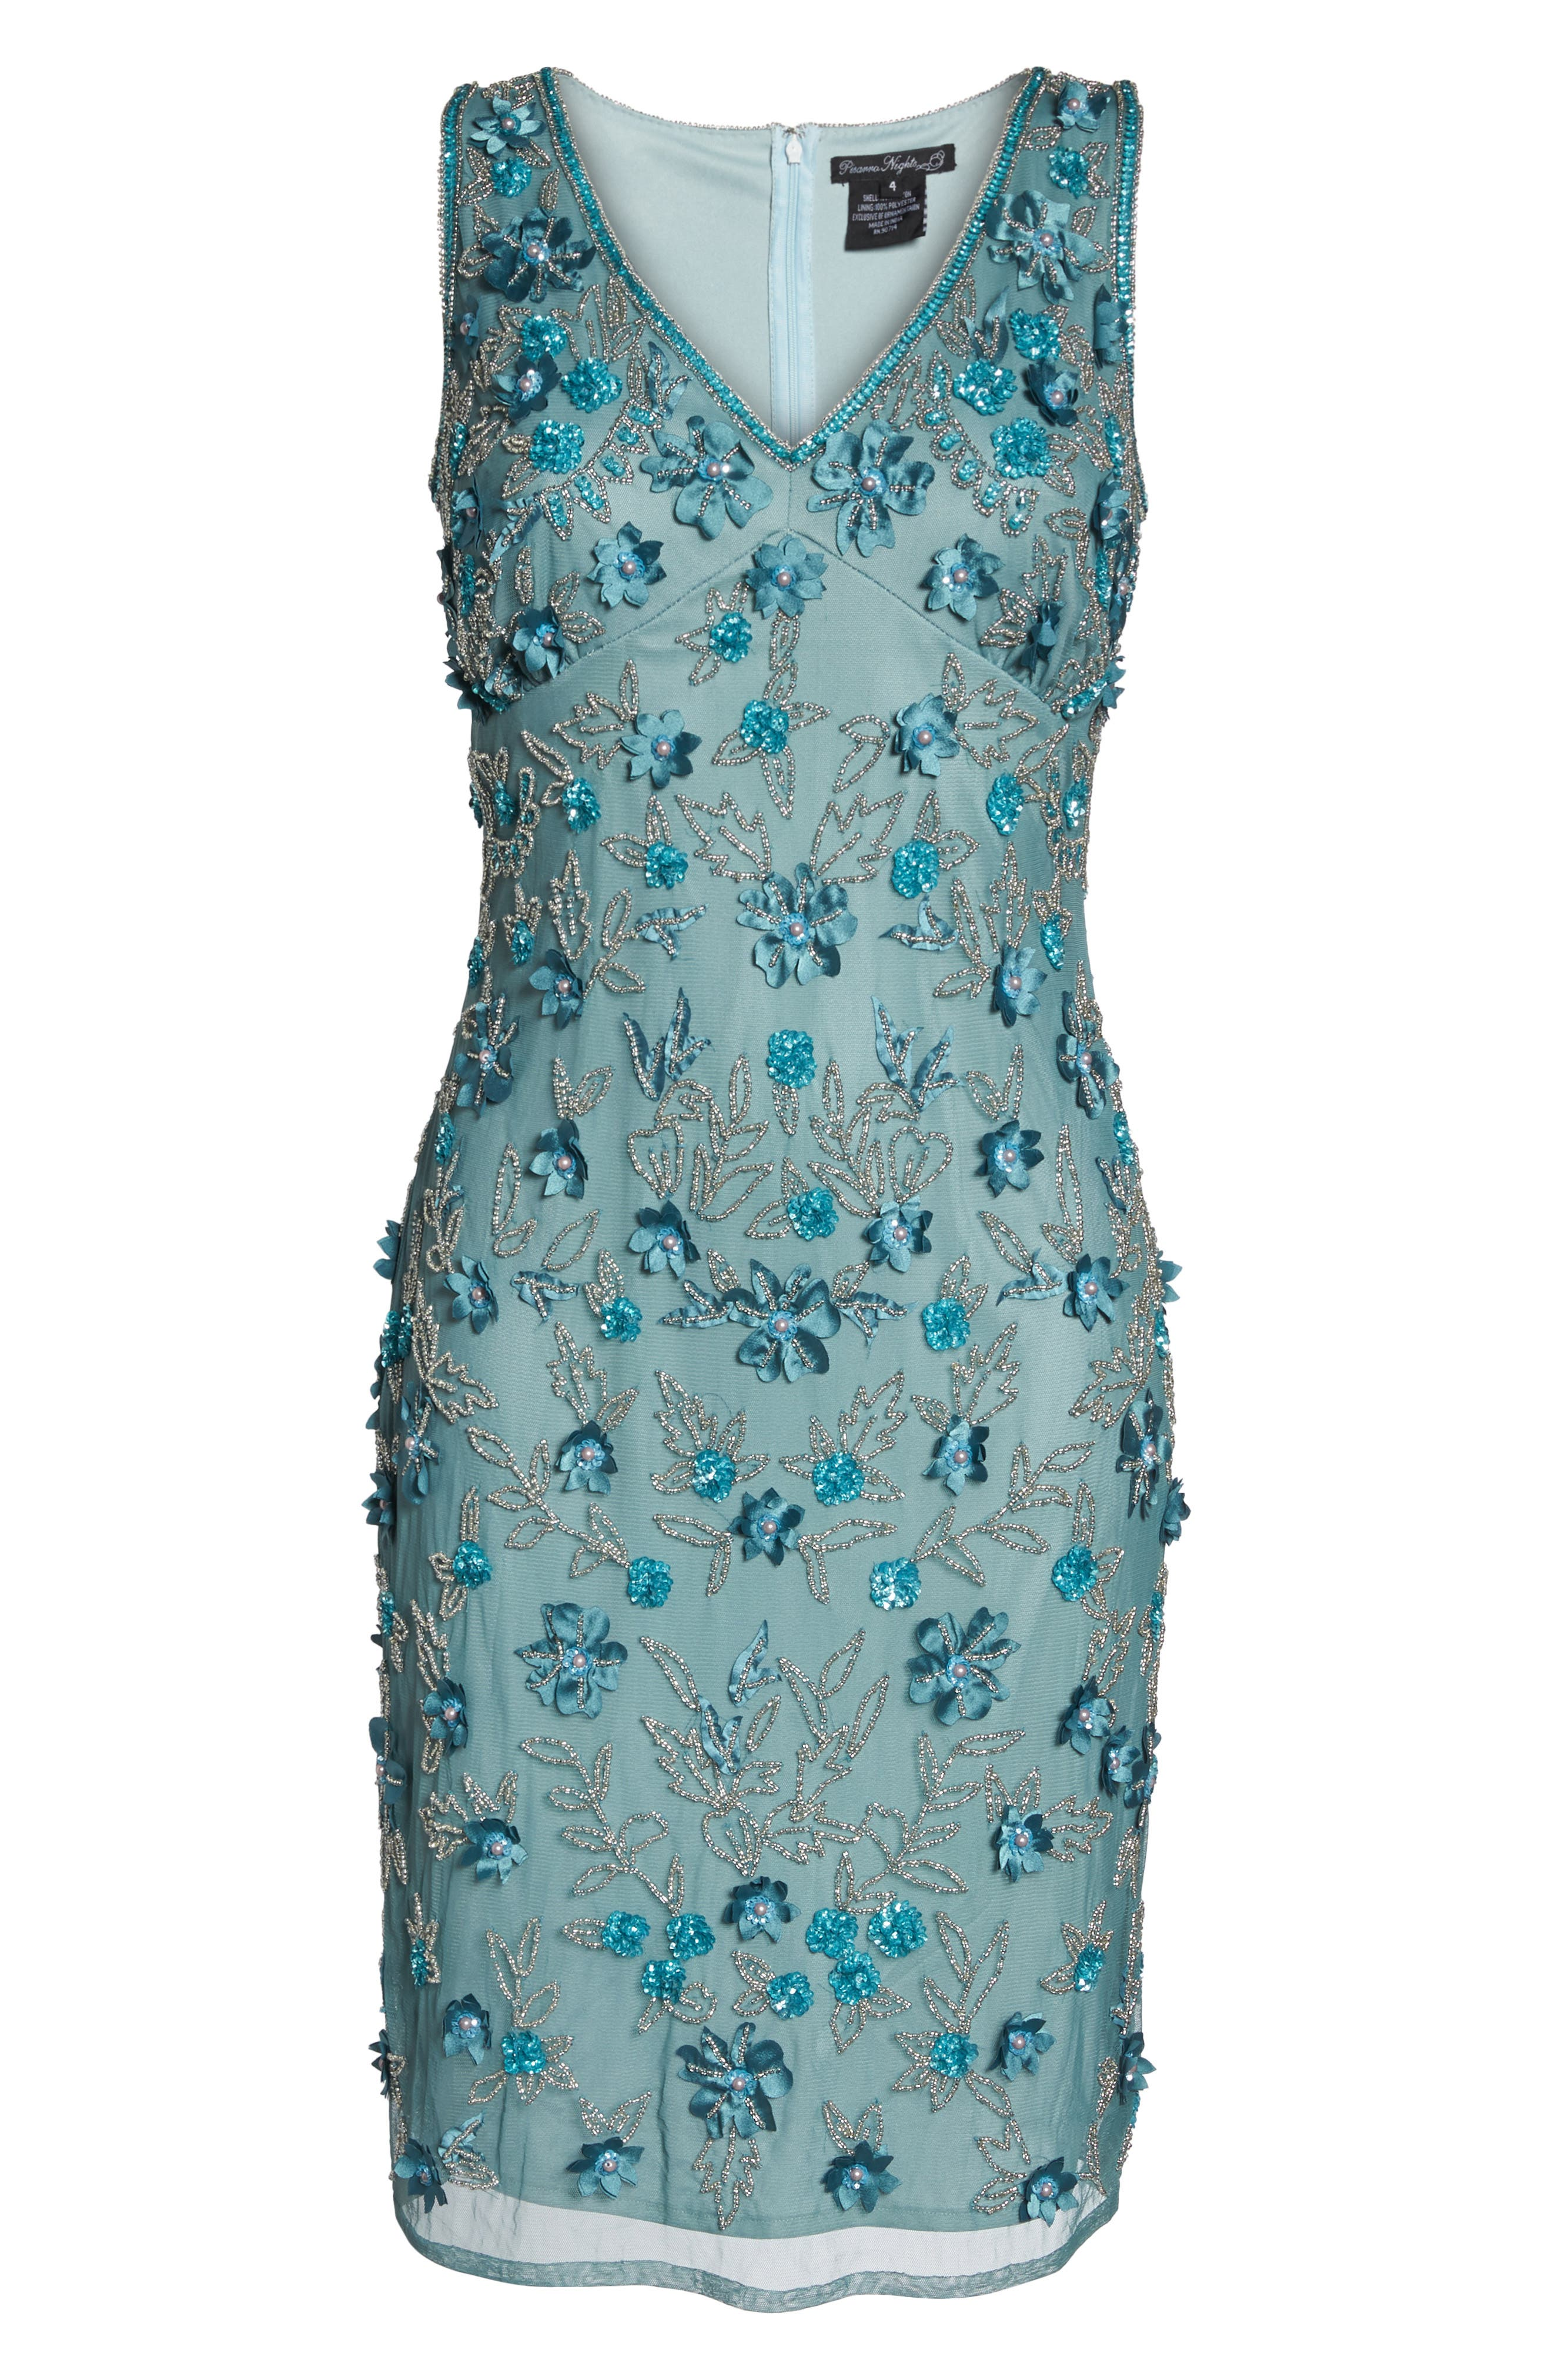 3D Floral Embellished Sheath Dress,                             Alternate thumbnail 7, color,                             400